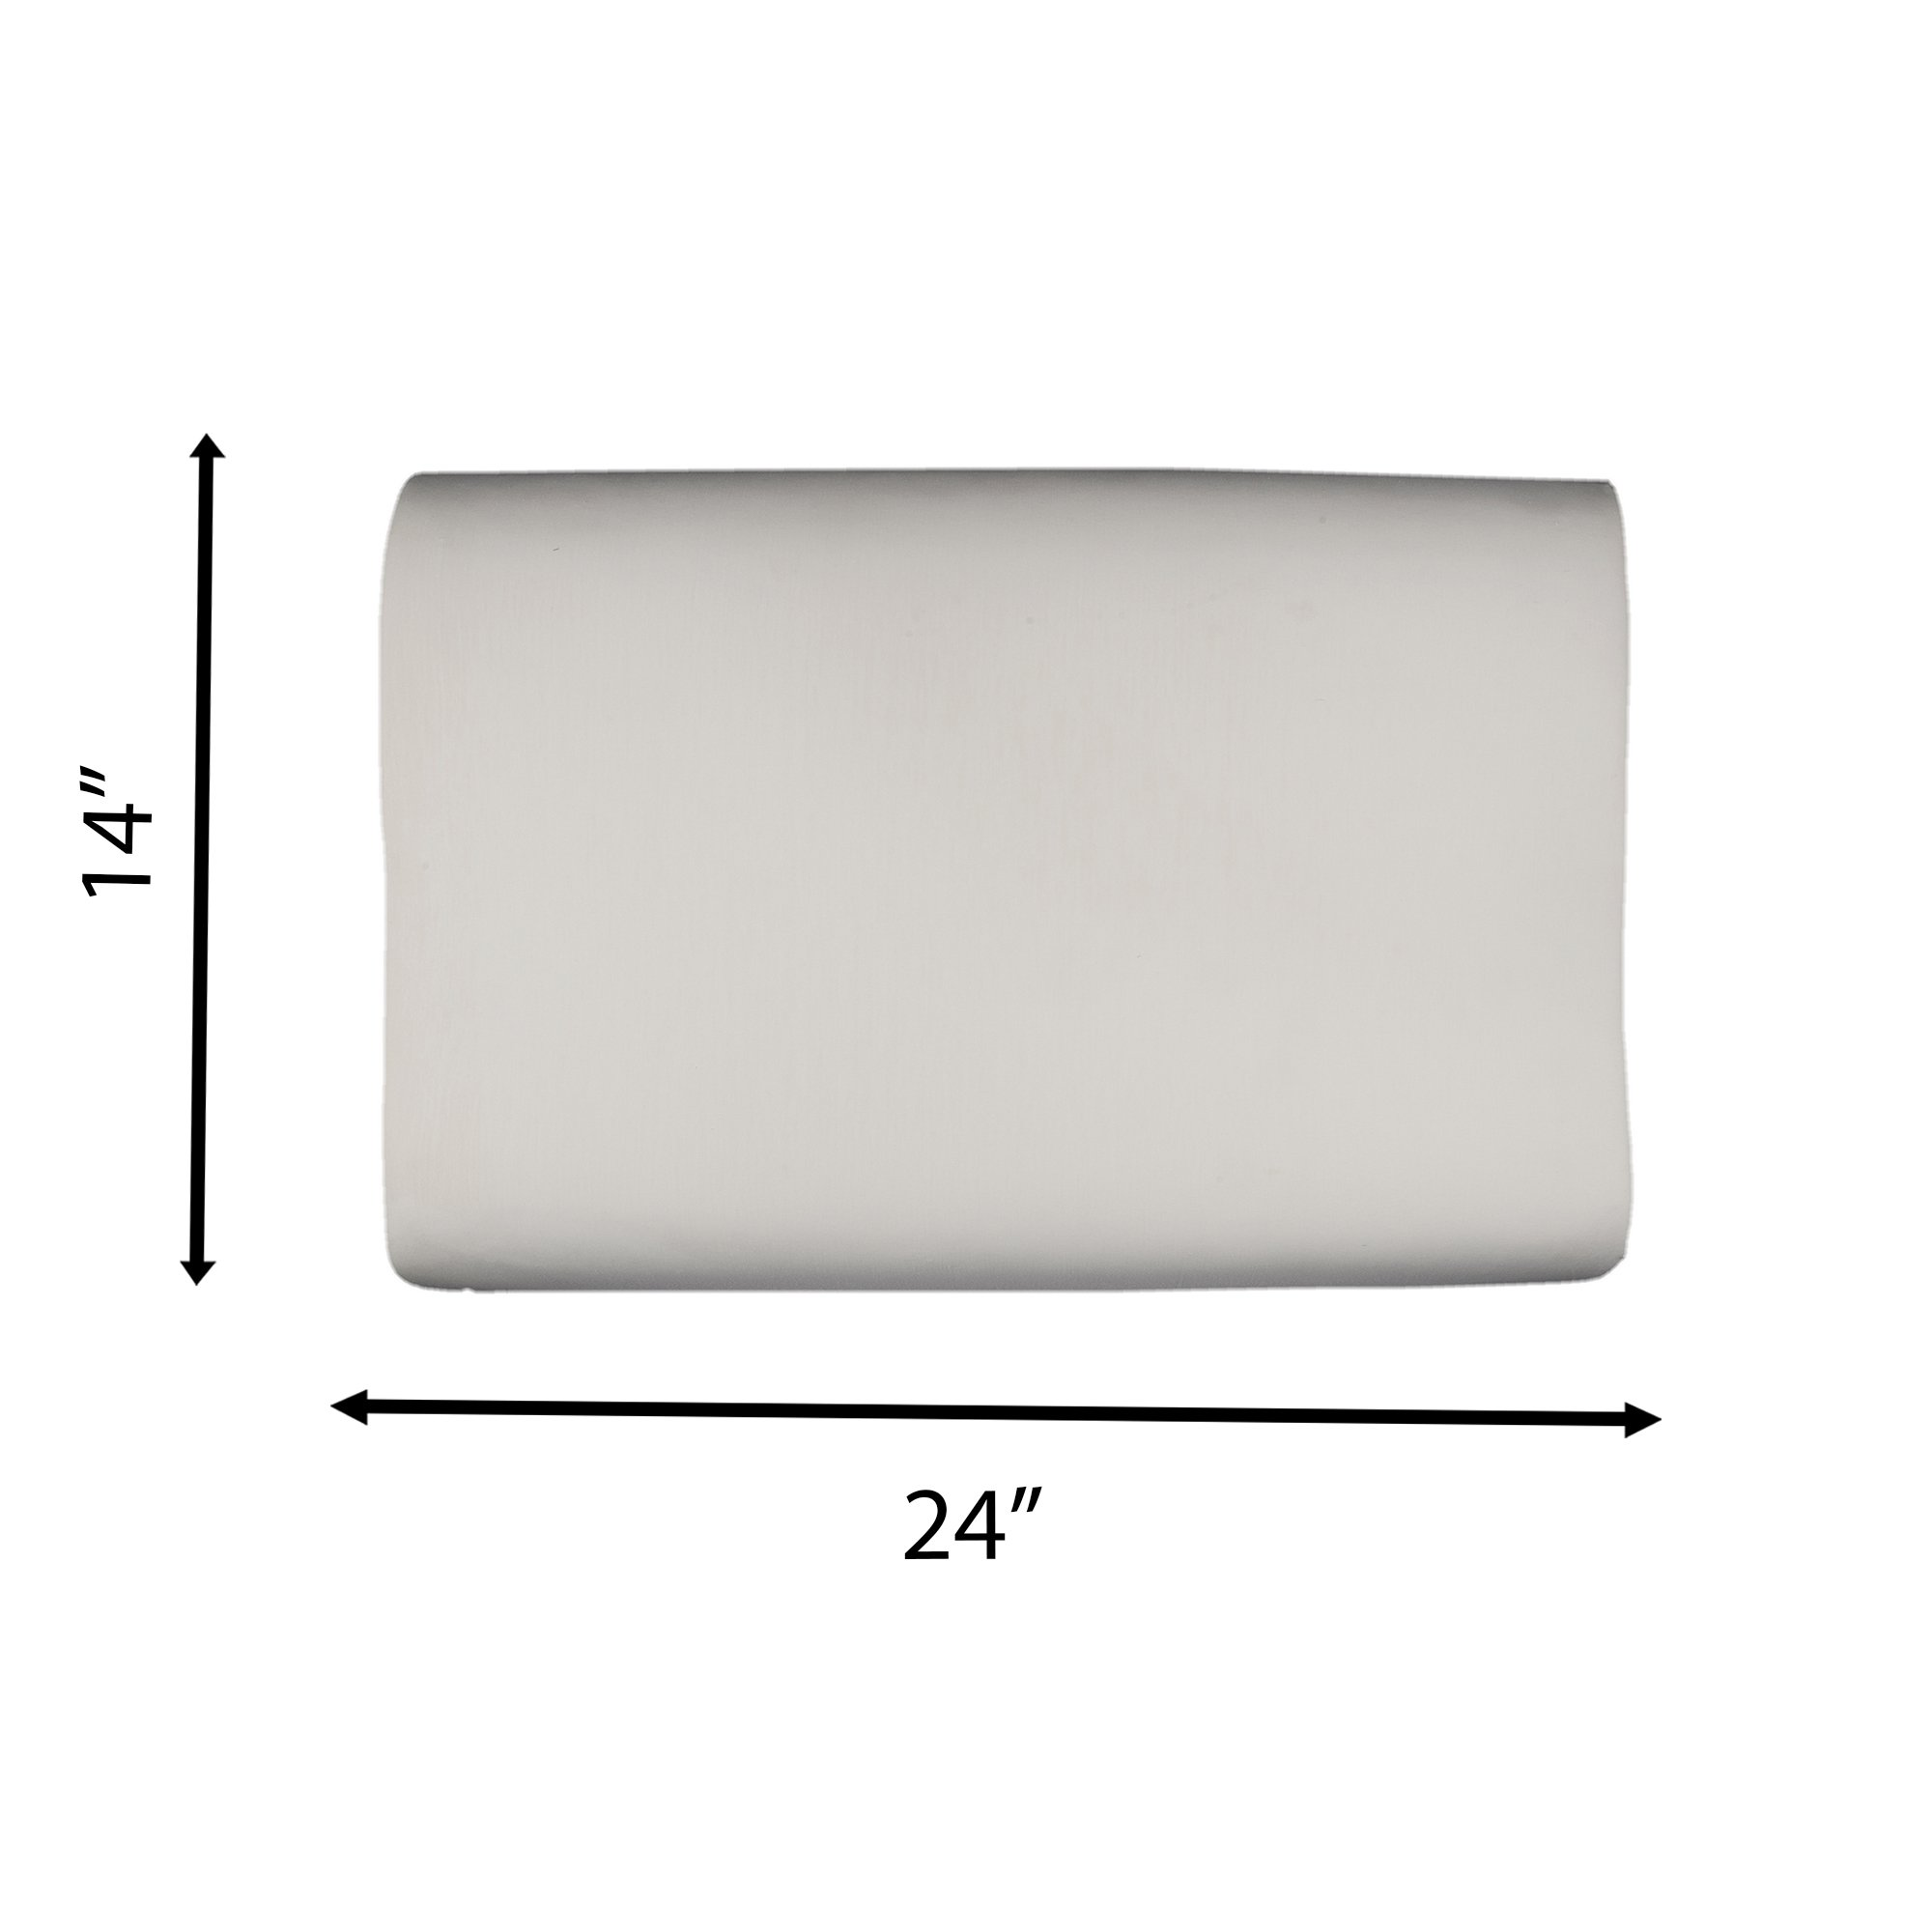 The White Willow Contour Visco Memory Foam Cushion For Neck Pain Relief Light Weight Cervical Support Orthopedic Bed Pillow For Sleeping Side or Back 20'' x 12'' x 4'' White (3), Free Express Shipping by The White Willow (Image #4)